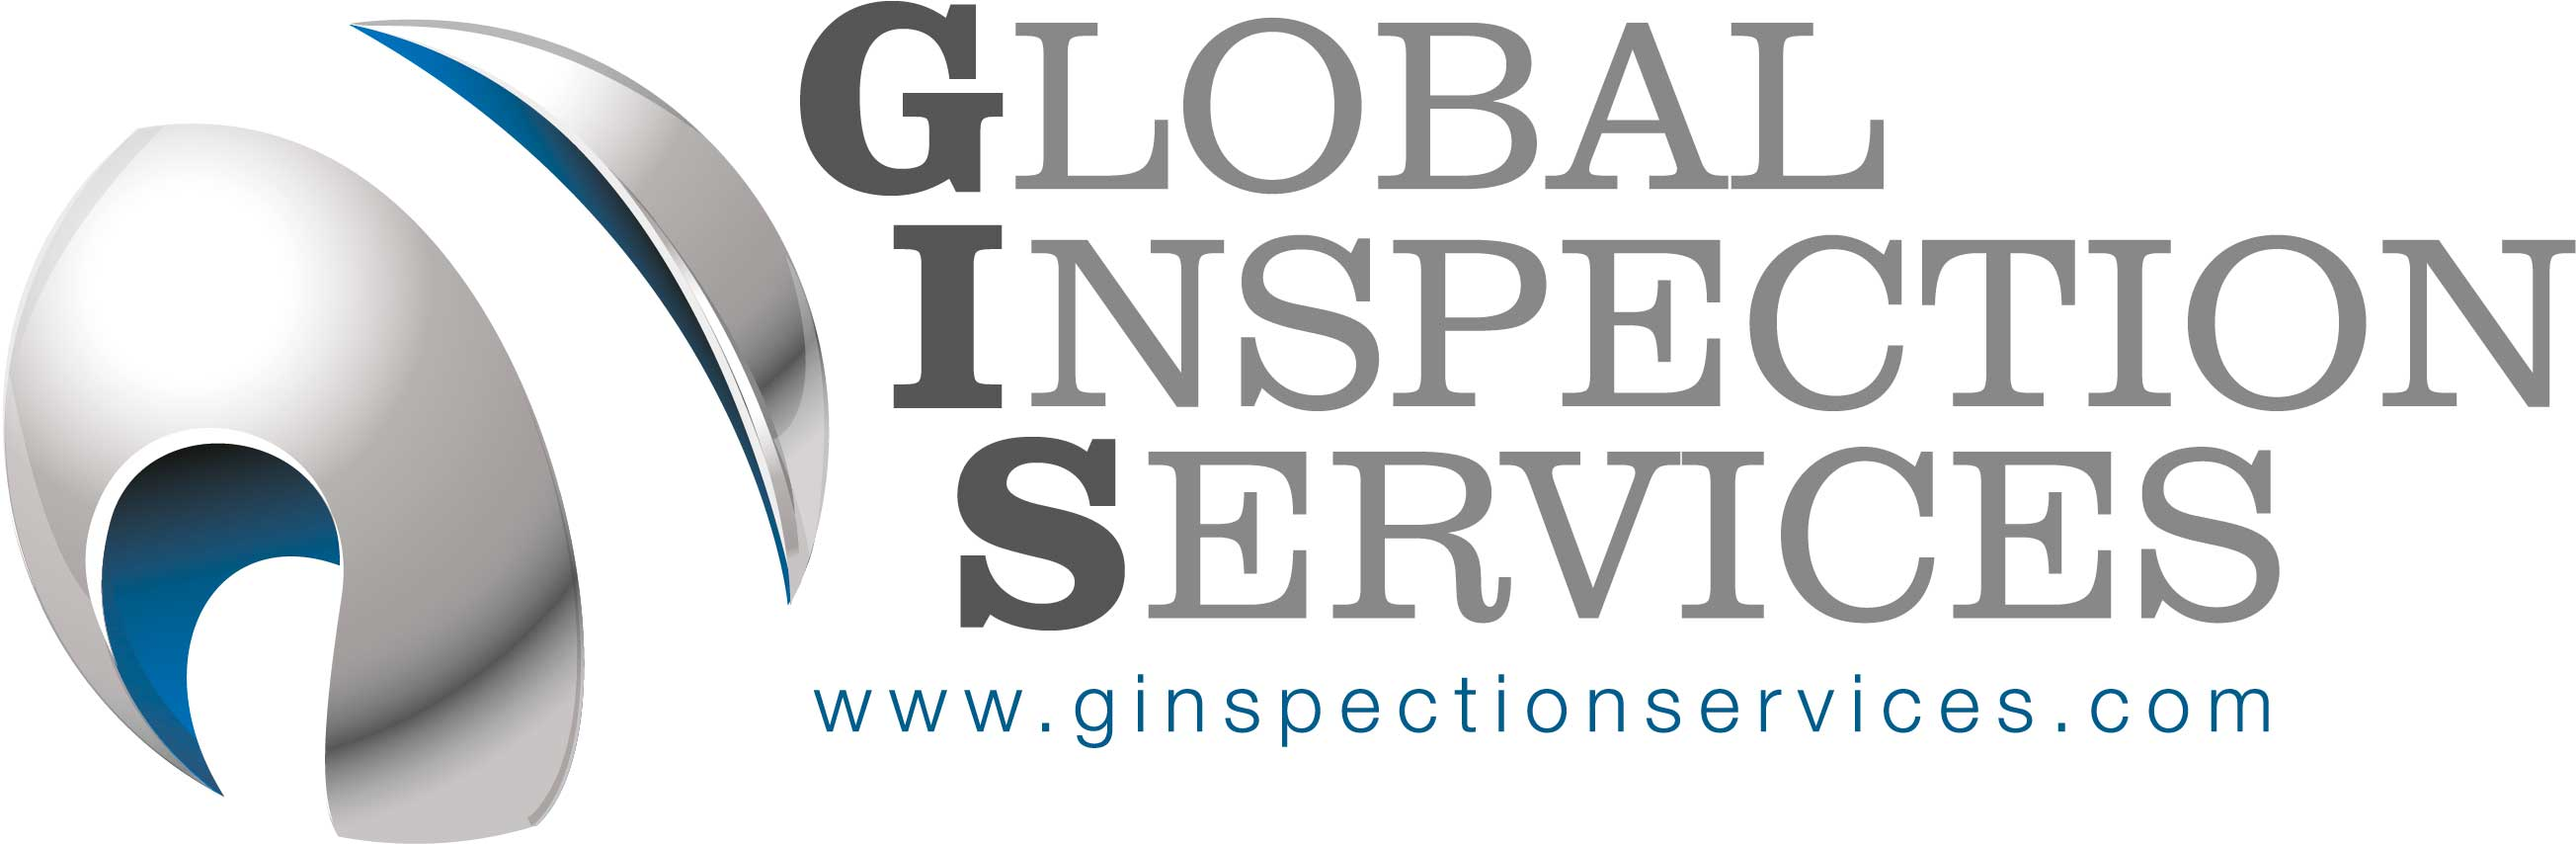 GLOBAL INSPECTION SERVICES SLU